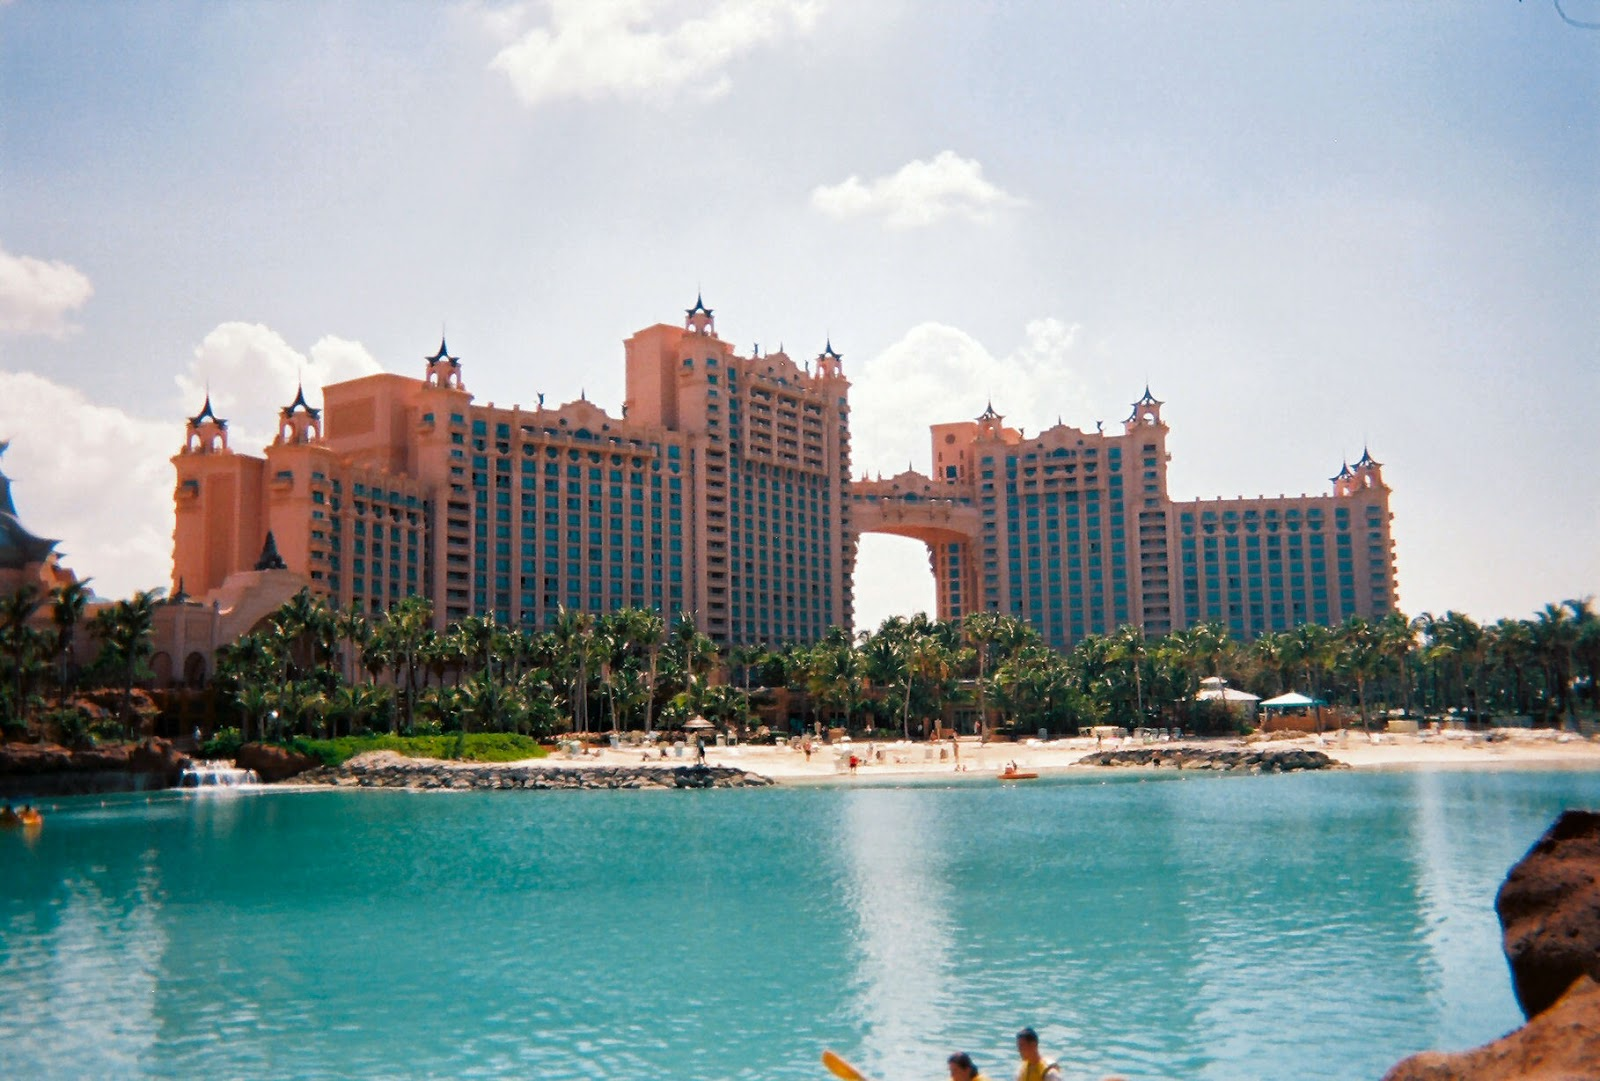 Nassau casino atlantis